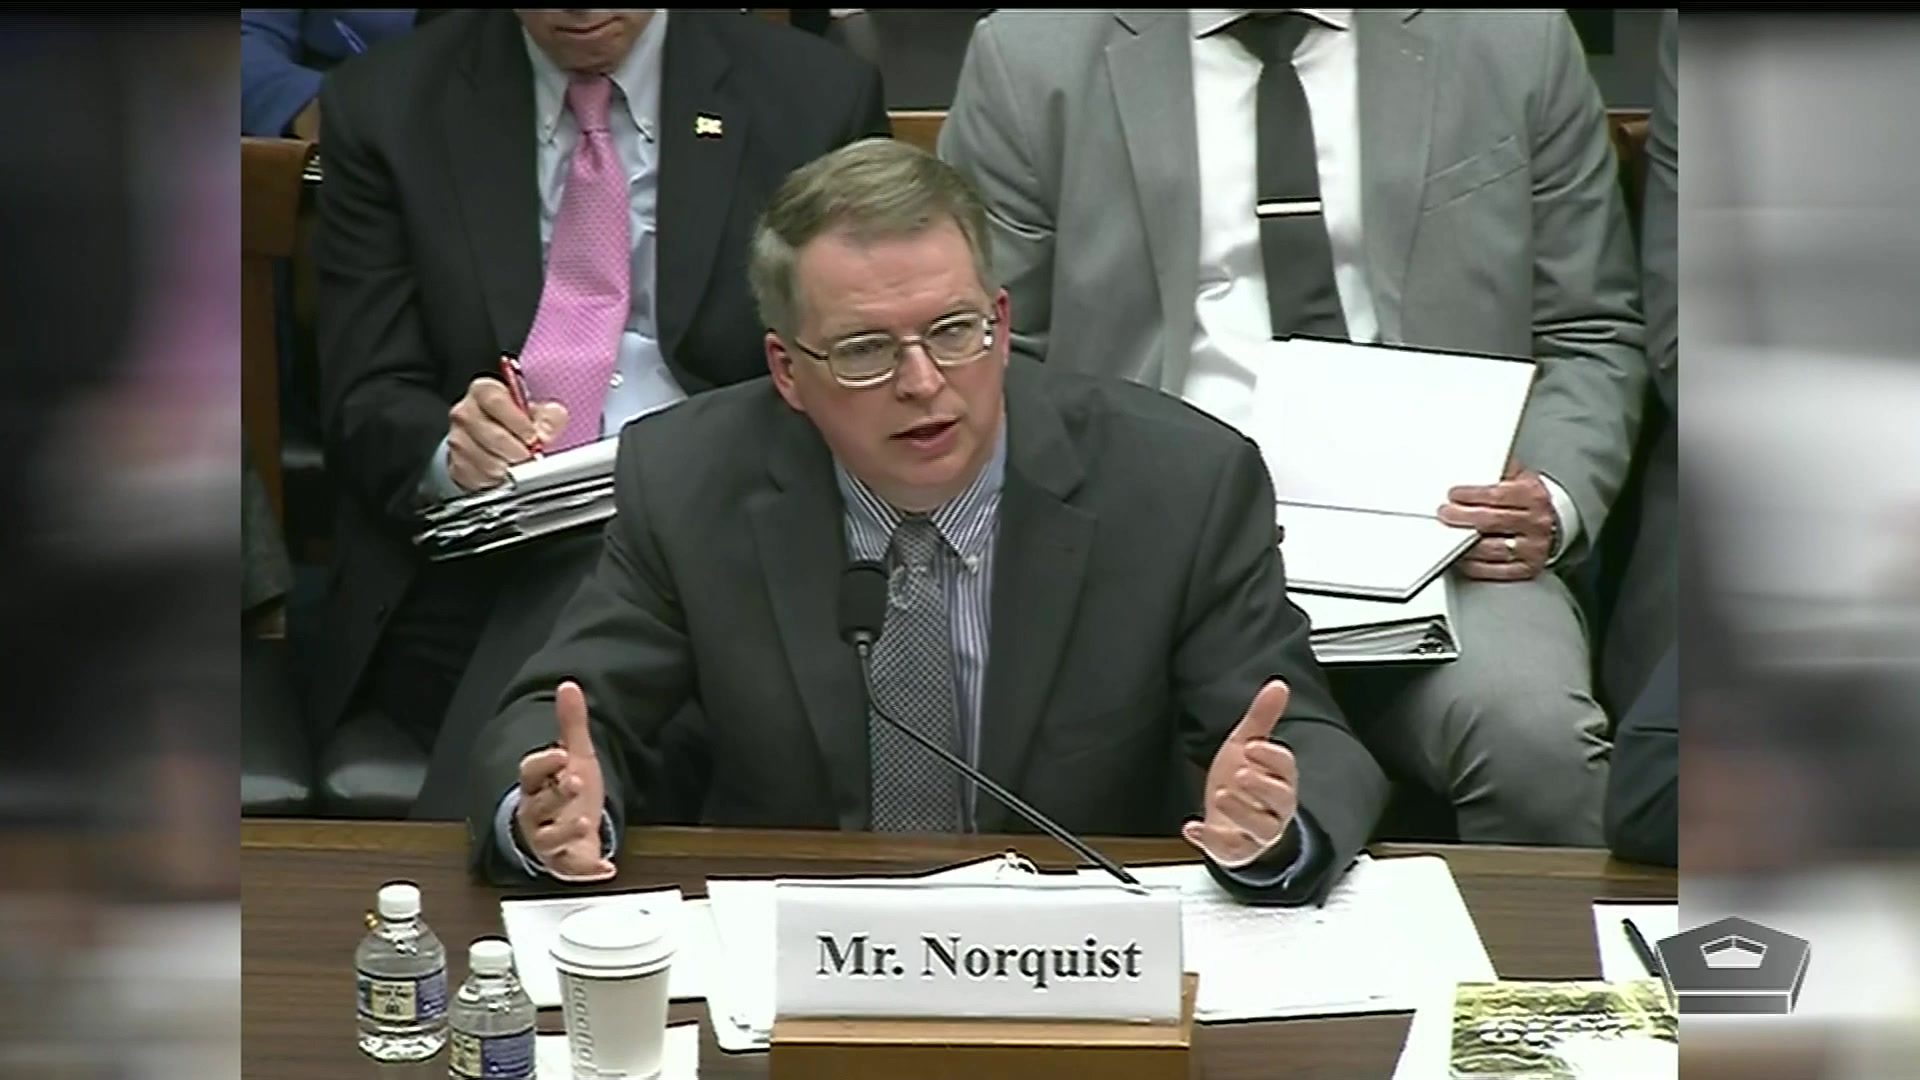 David L. Norquist speaks at a table.